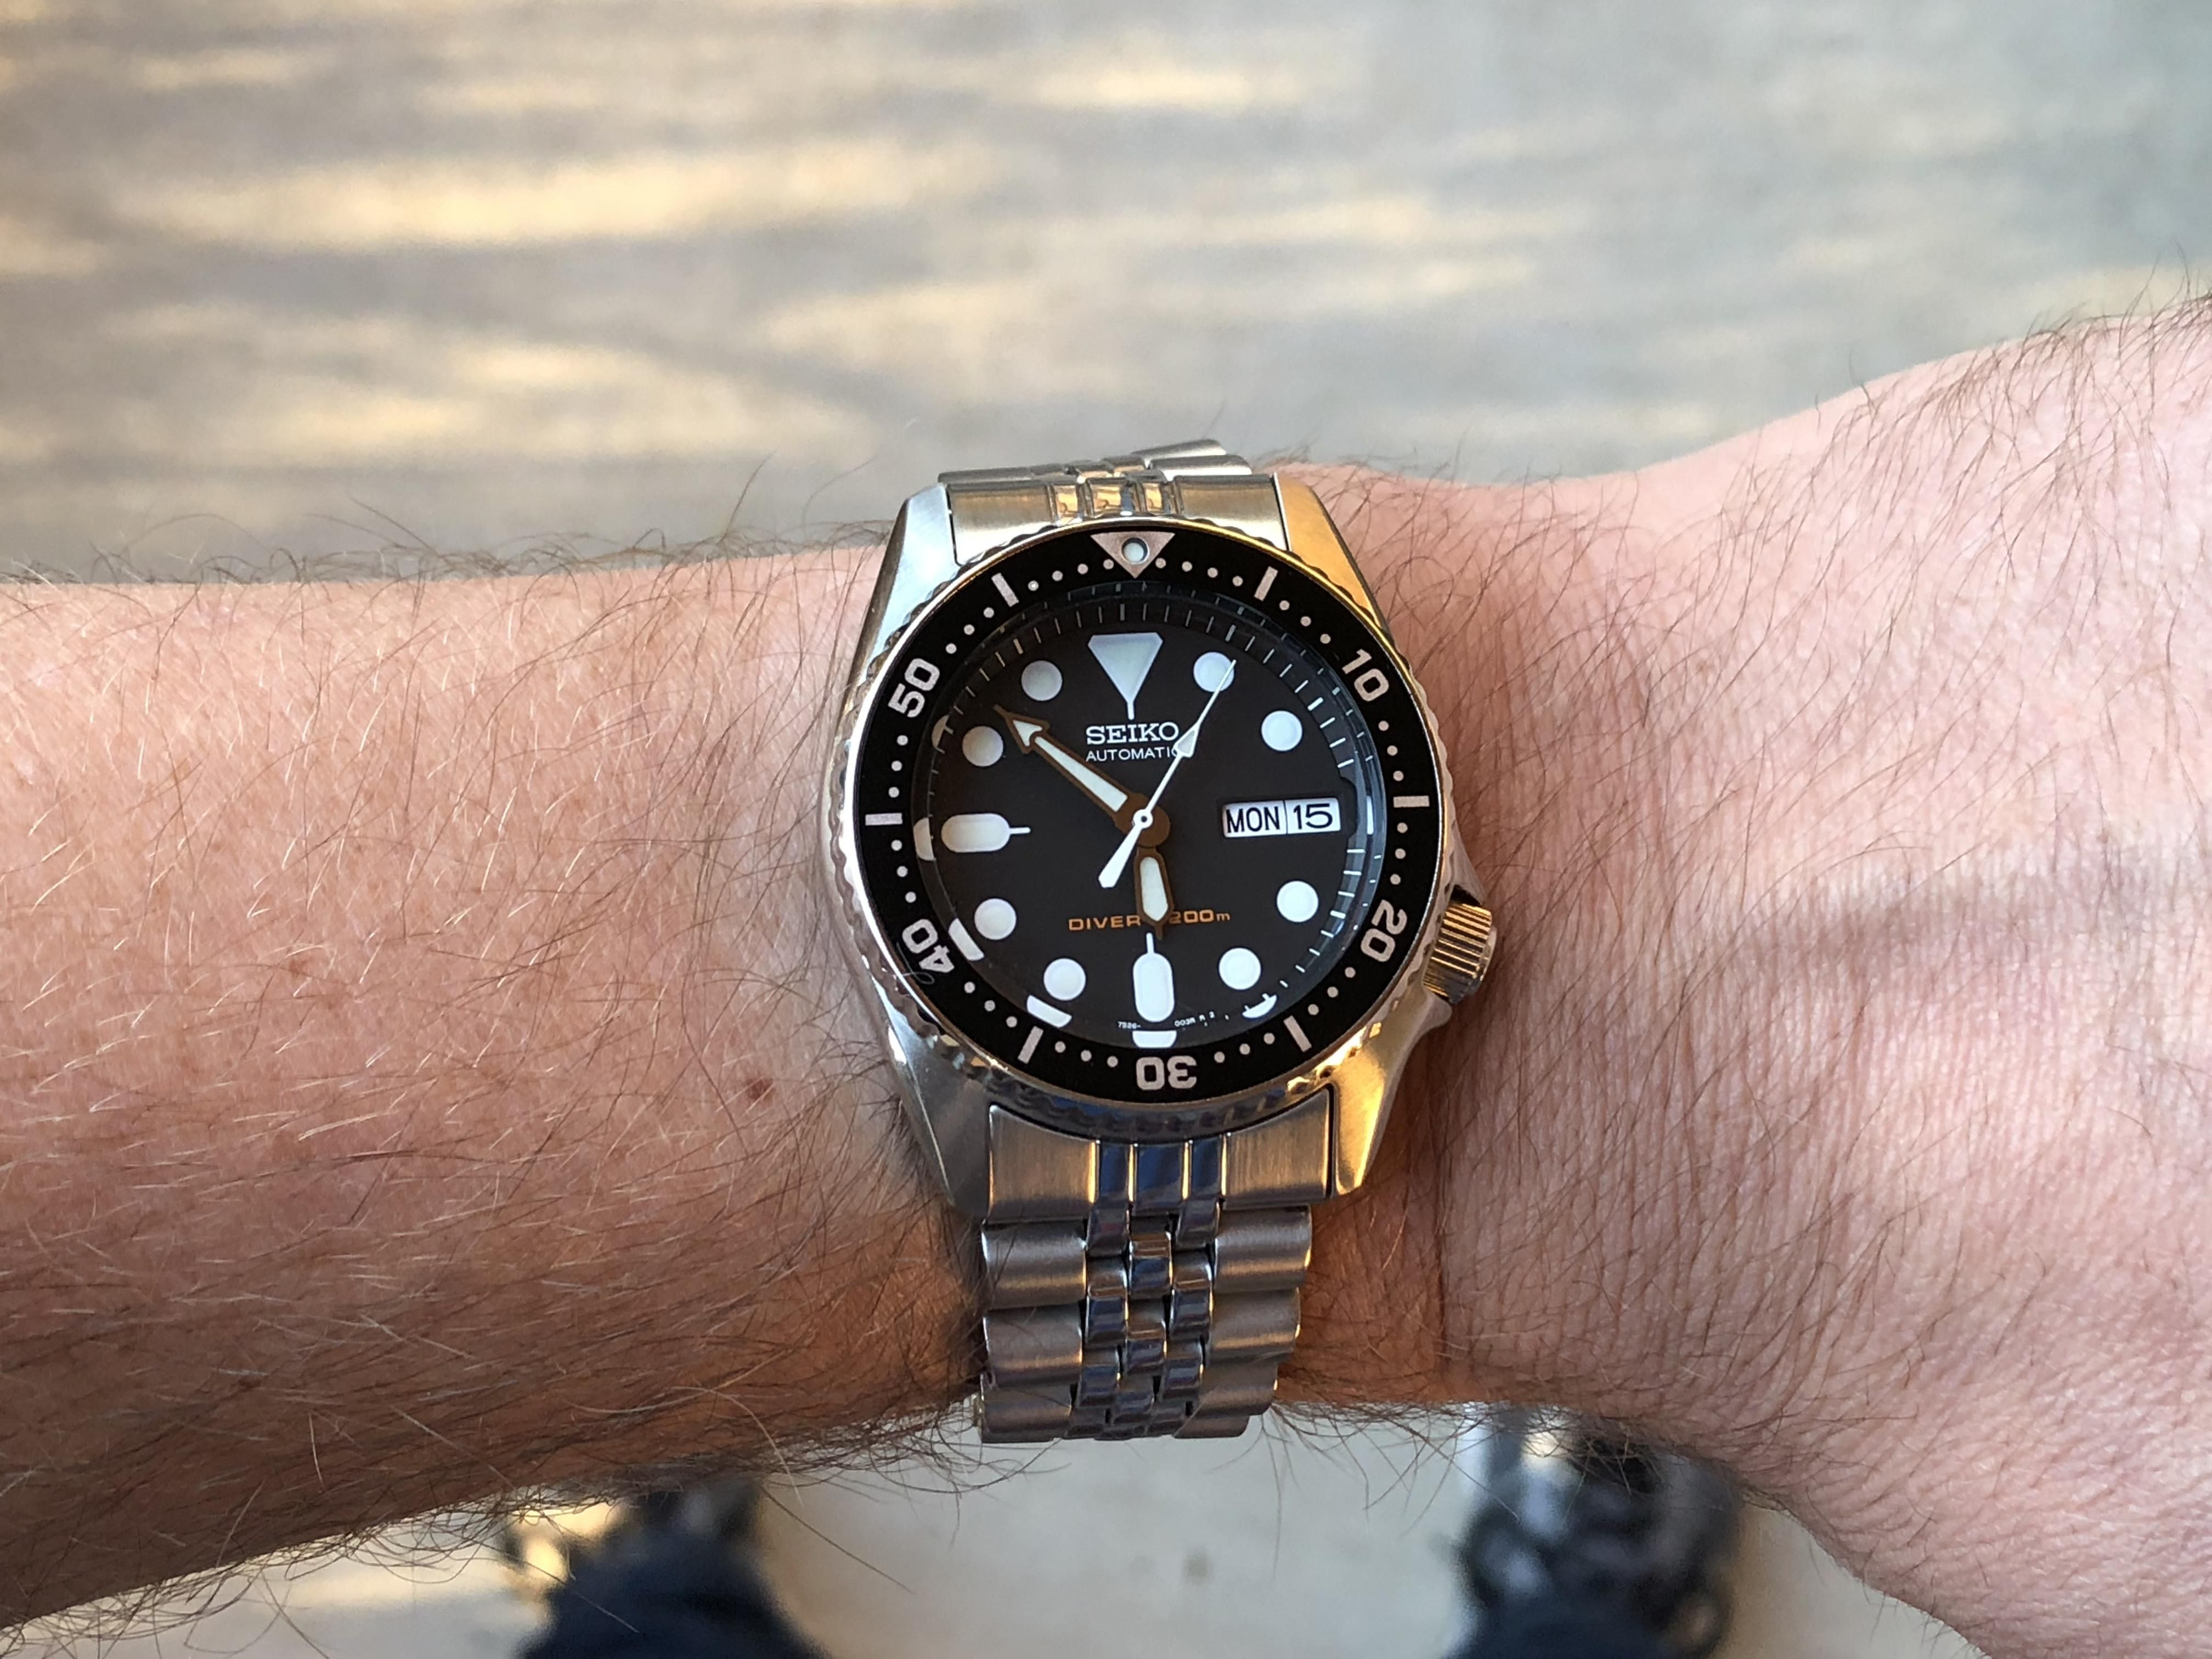 [Seiko] New Watch Day SKX013